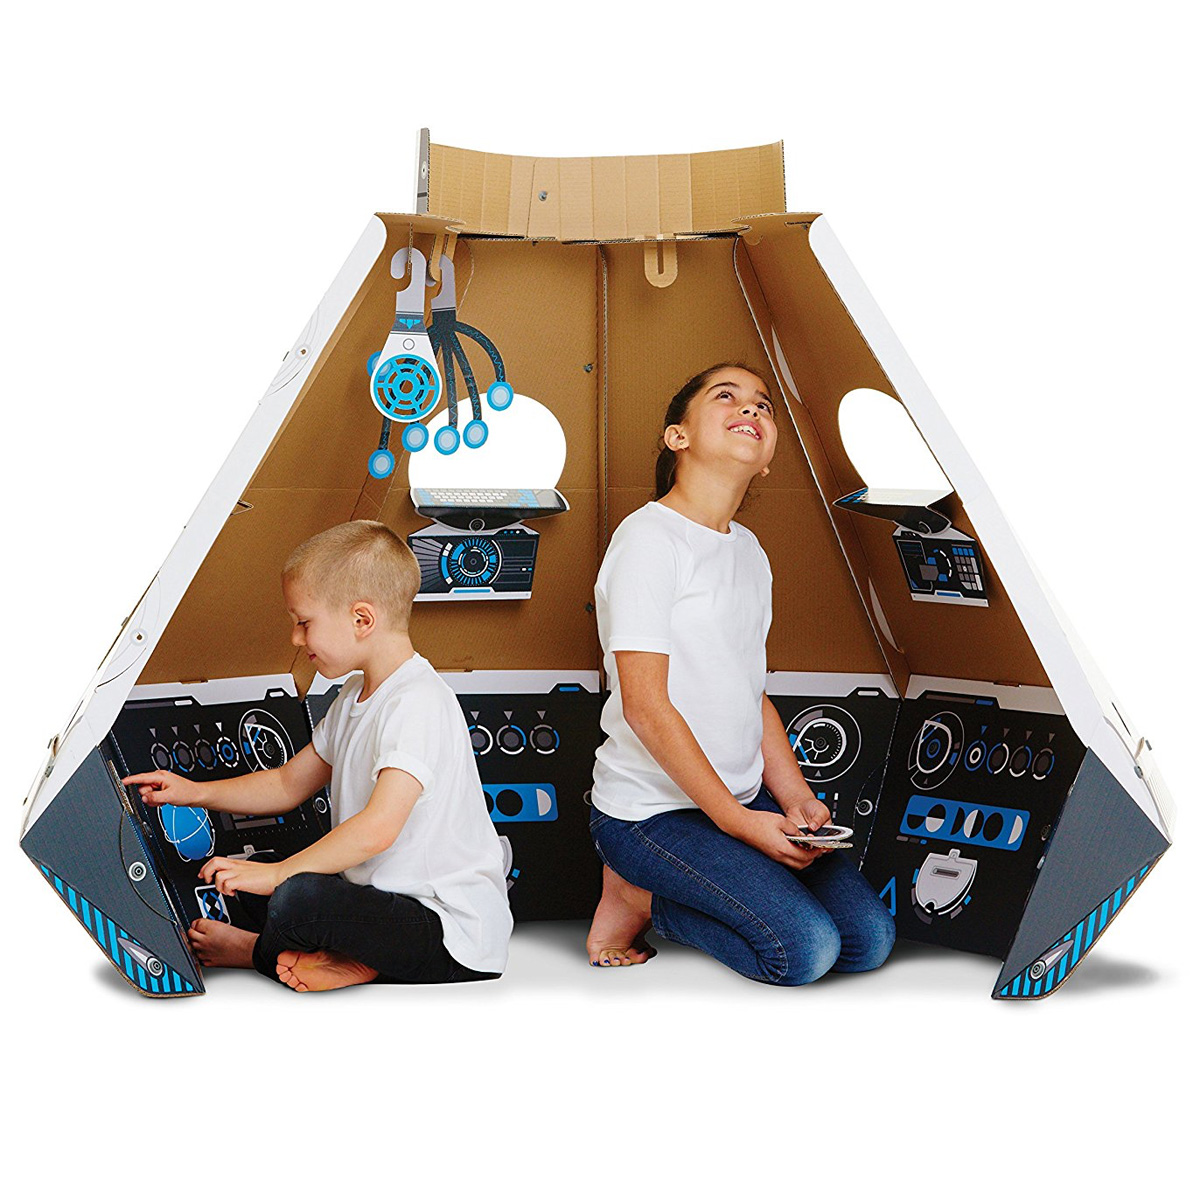 Makedo Gigantic Cardboard Construction Space Pod The